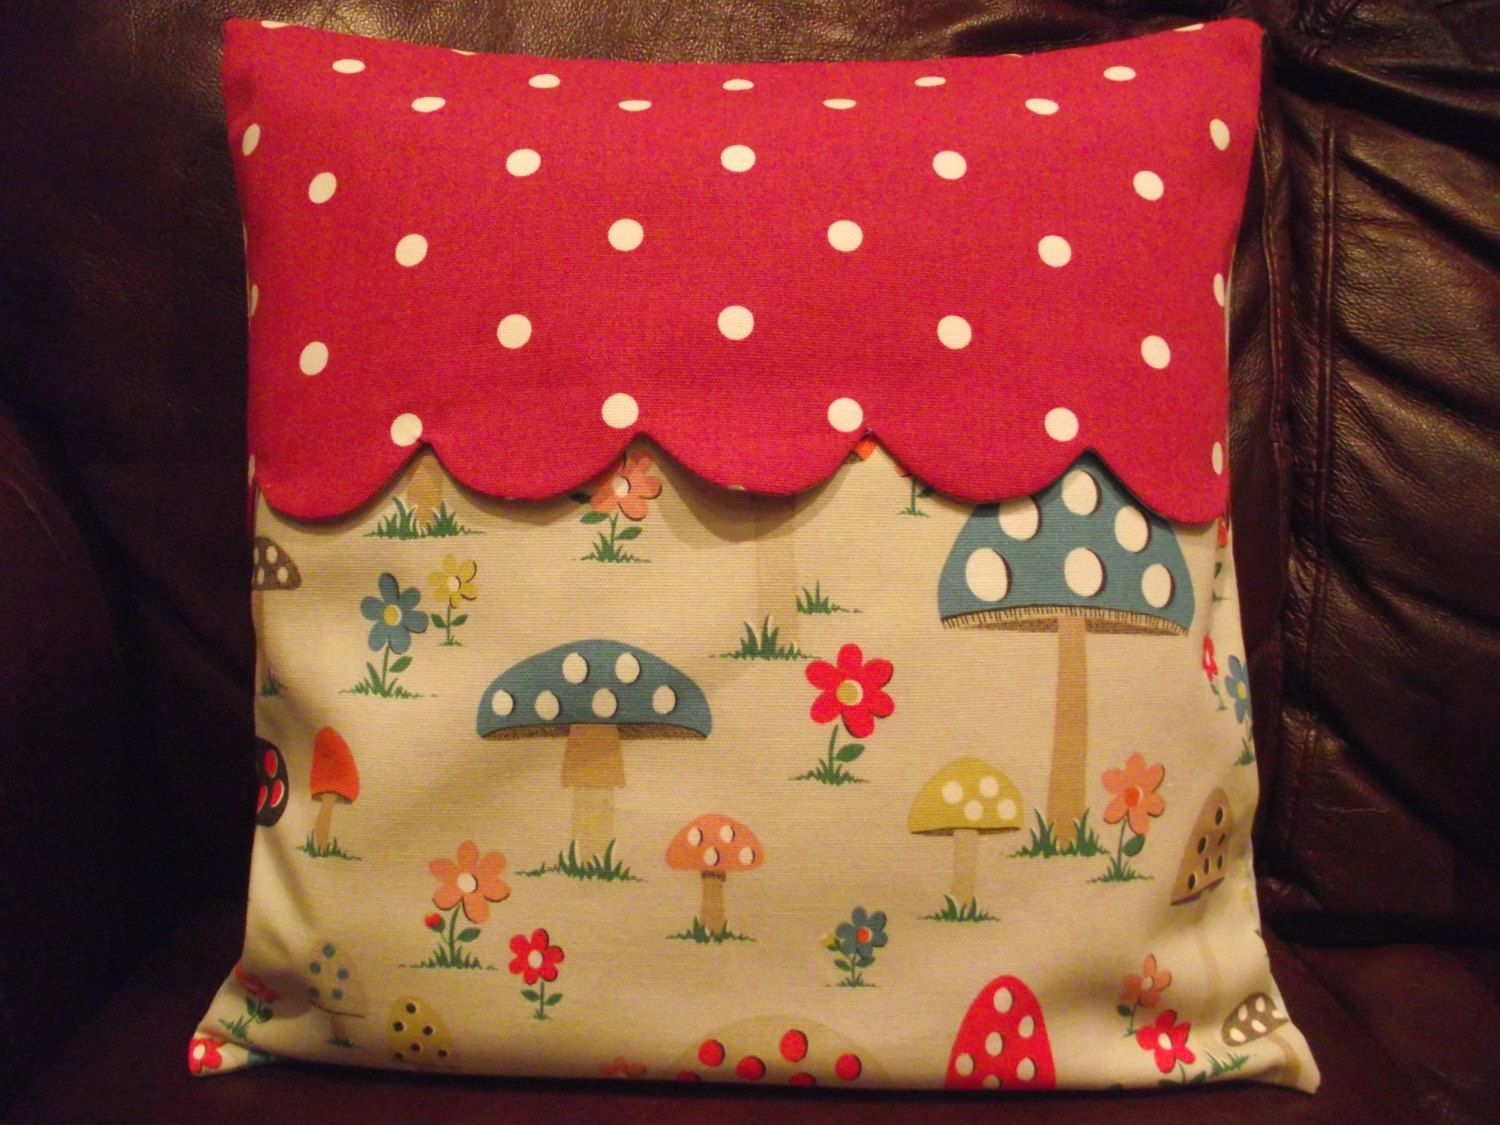 Handmade cushion cover in cath kidston by breifnecottage on etsy